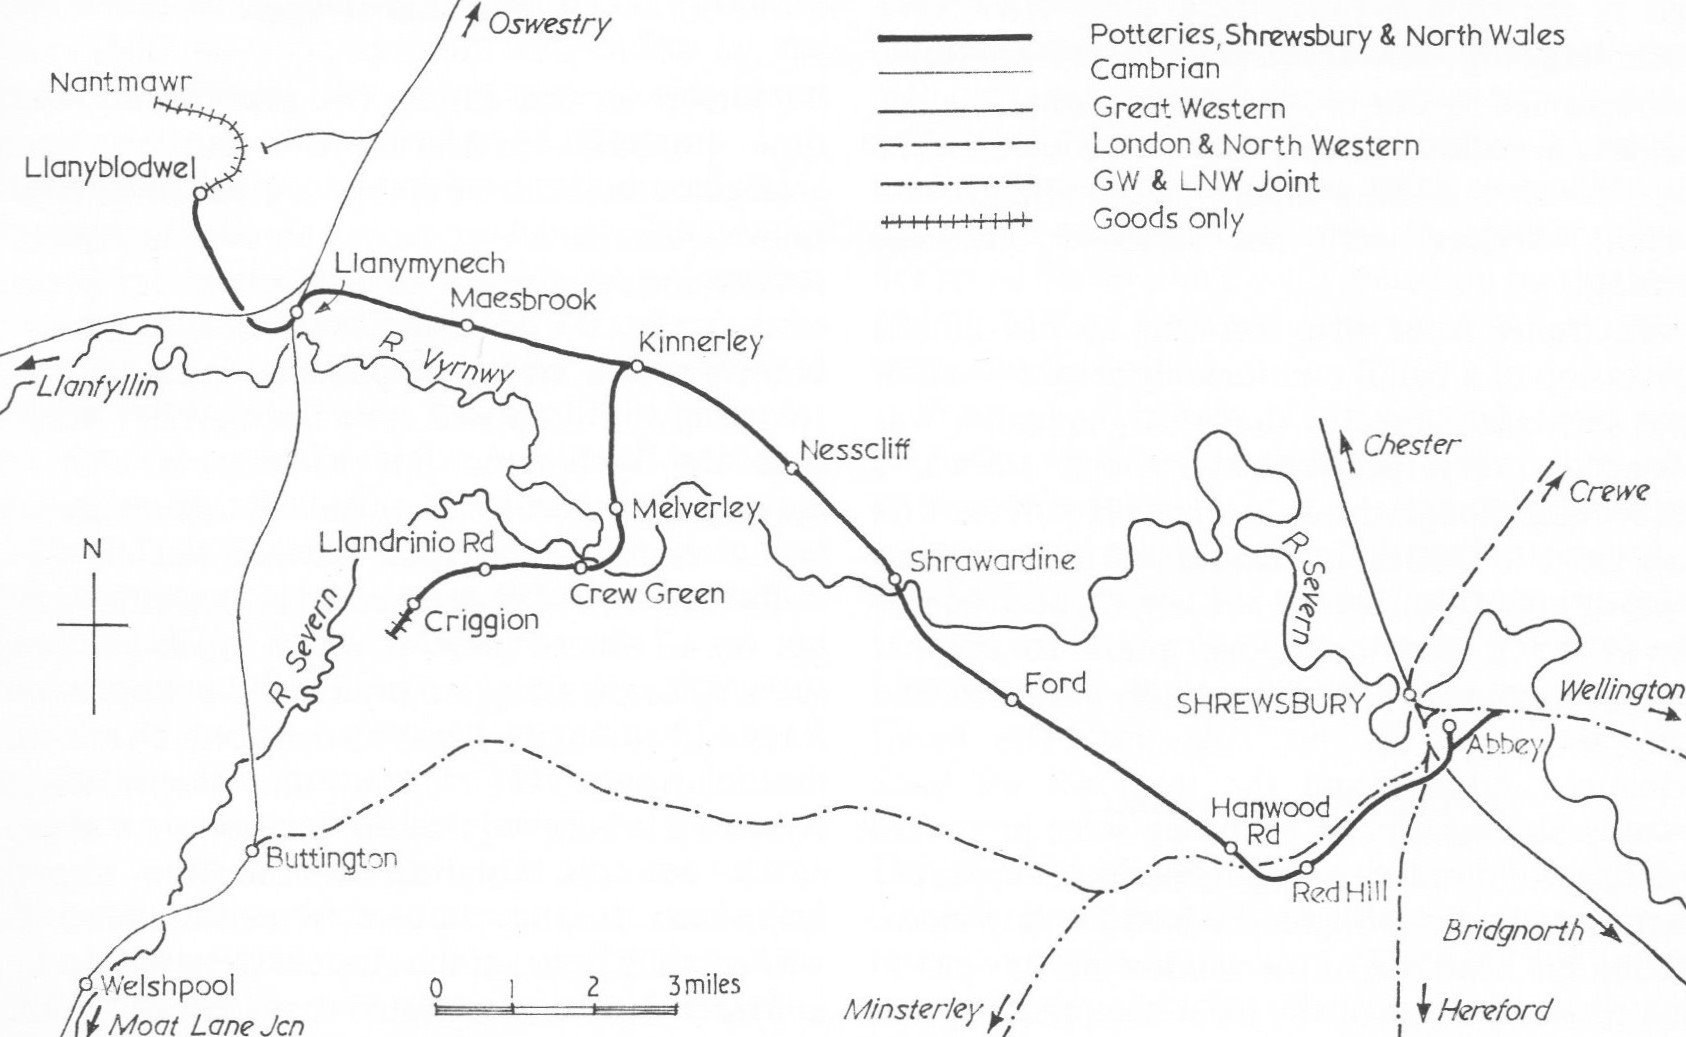 Shropshire and Montgomeryshire Railway Map